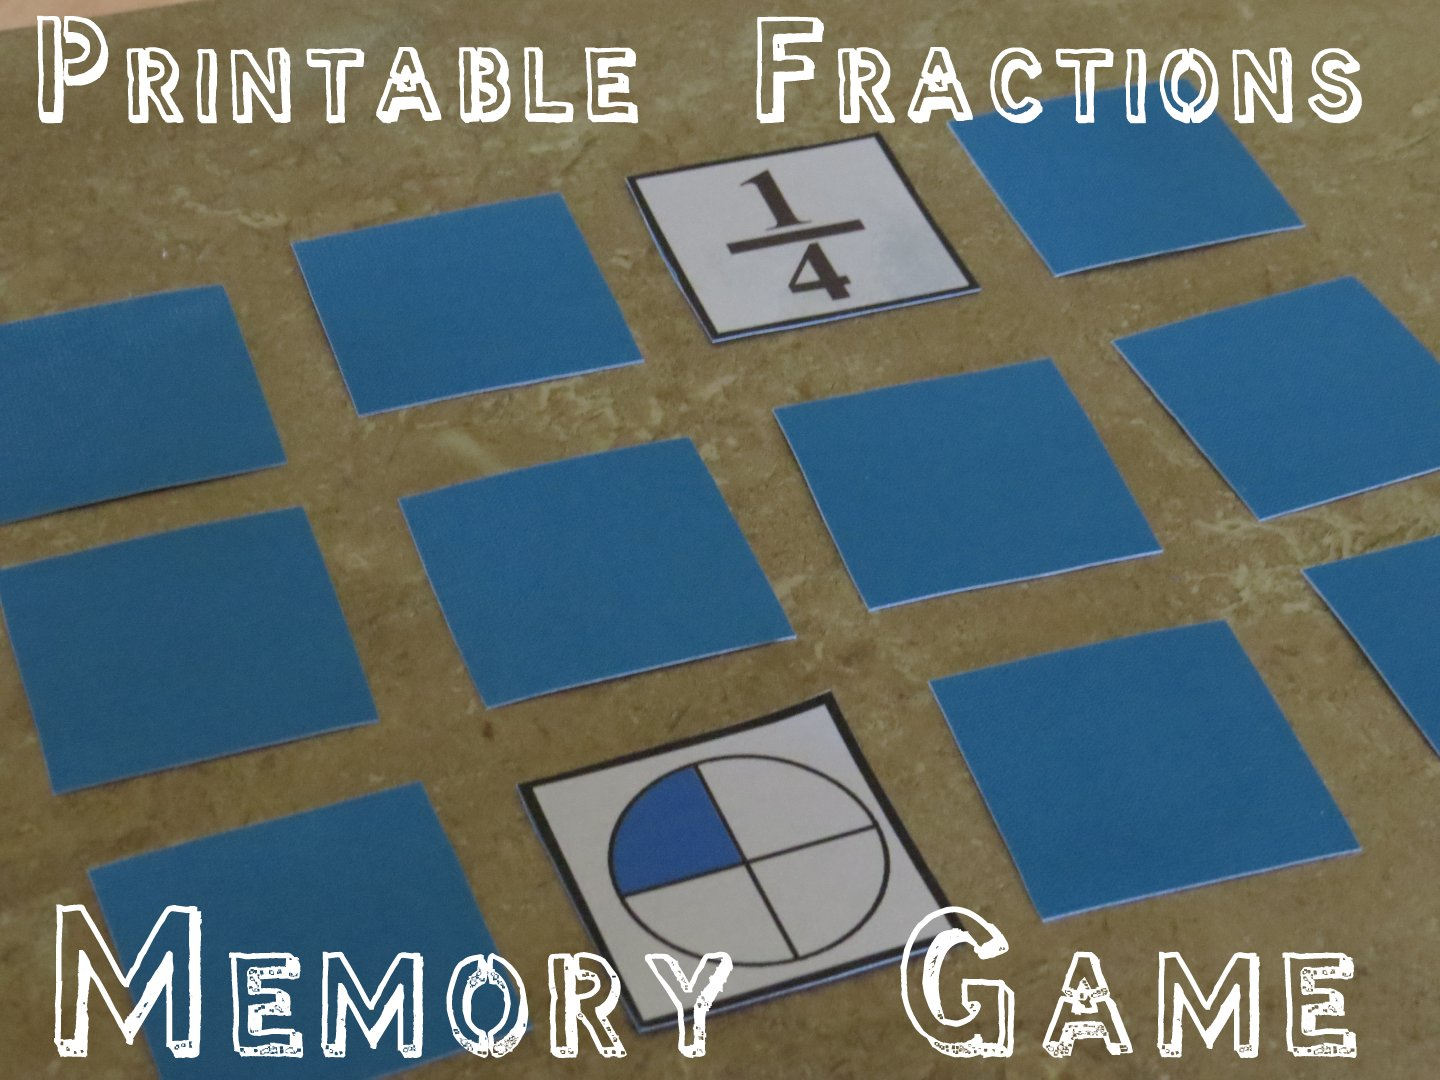 Refreshing image with printable fraction game